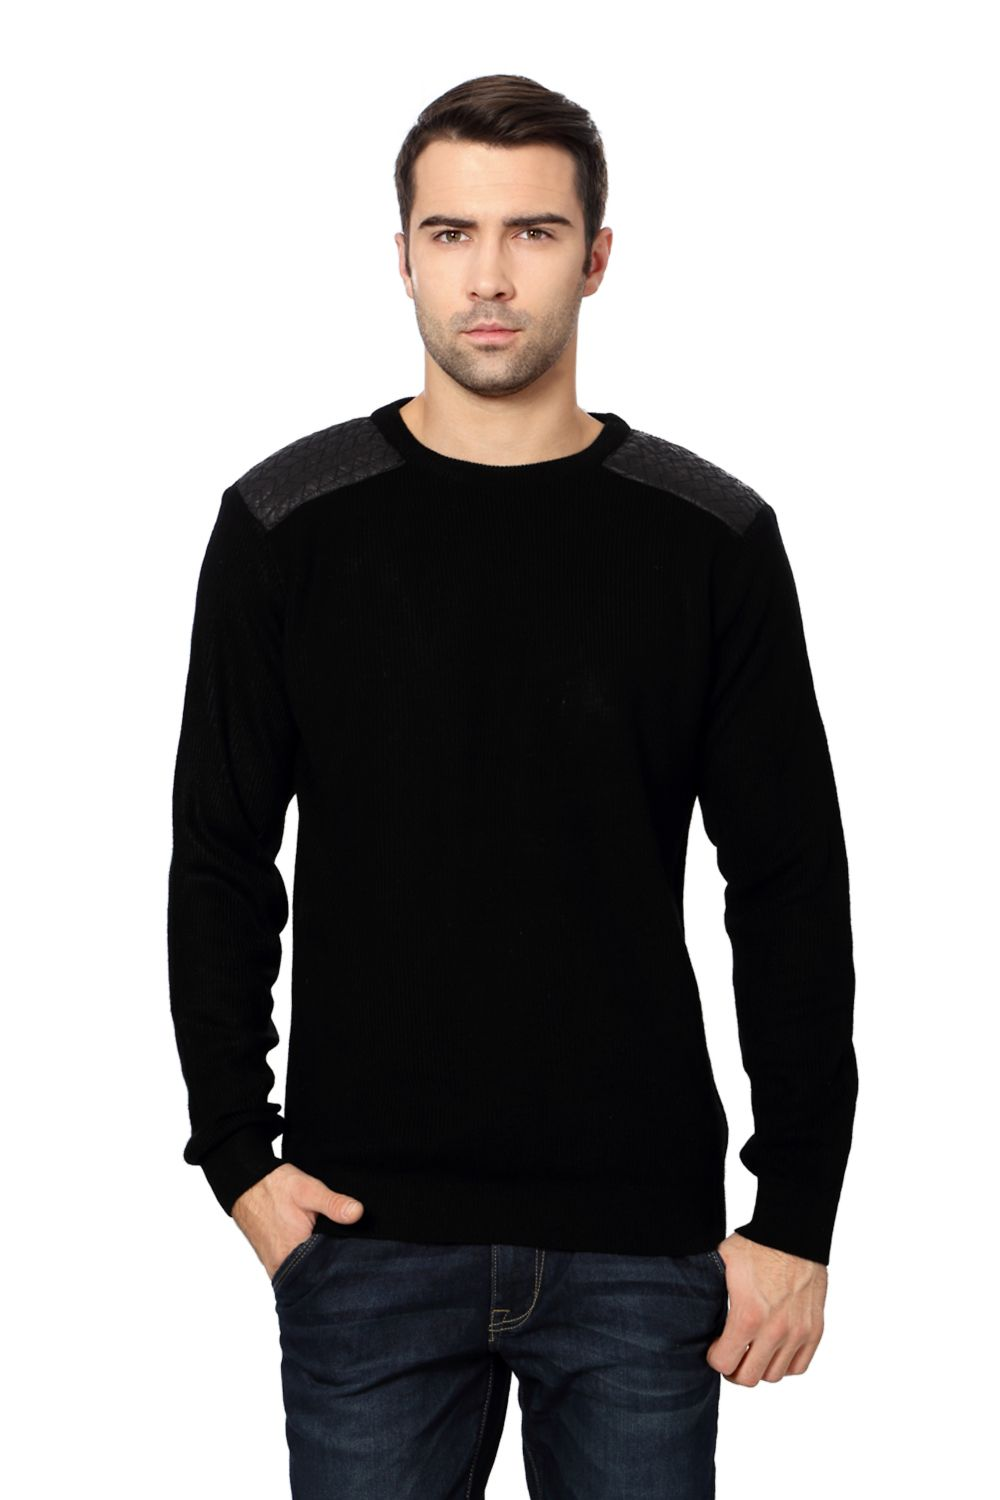 Van Heusen Black Sweater - 1875 | Cool Sweater Designs | Pinterest